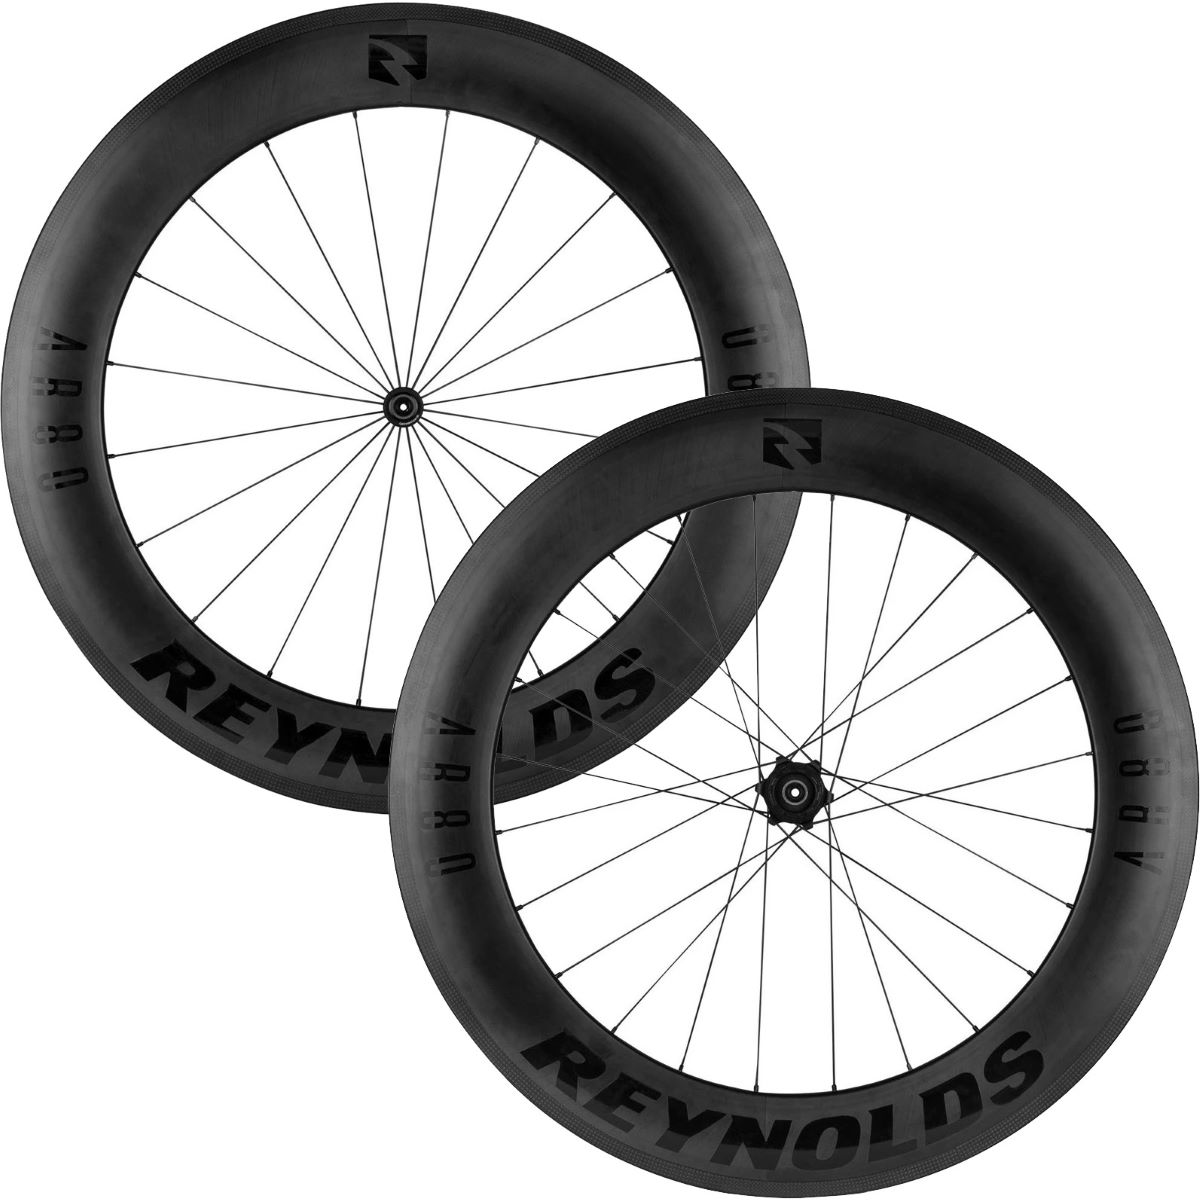 Reynolds Reynolds AR 80 Carbon Road Wheelset   Wheel Sets